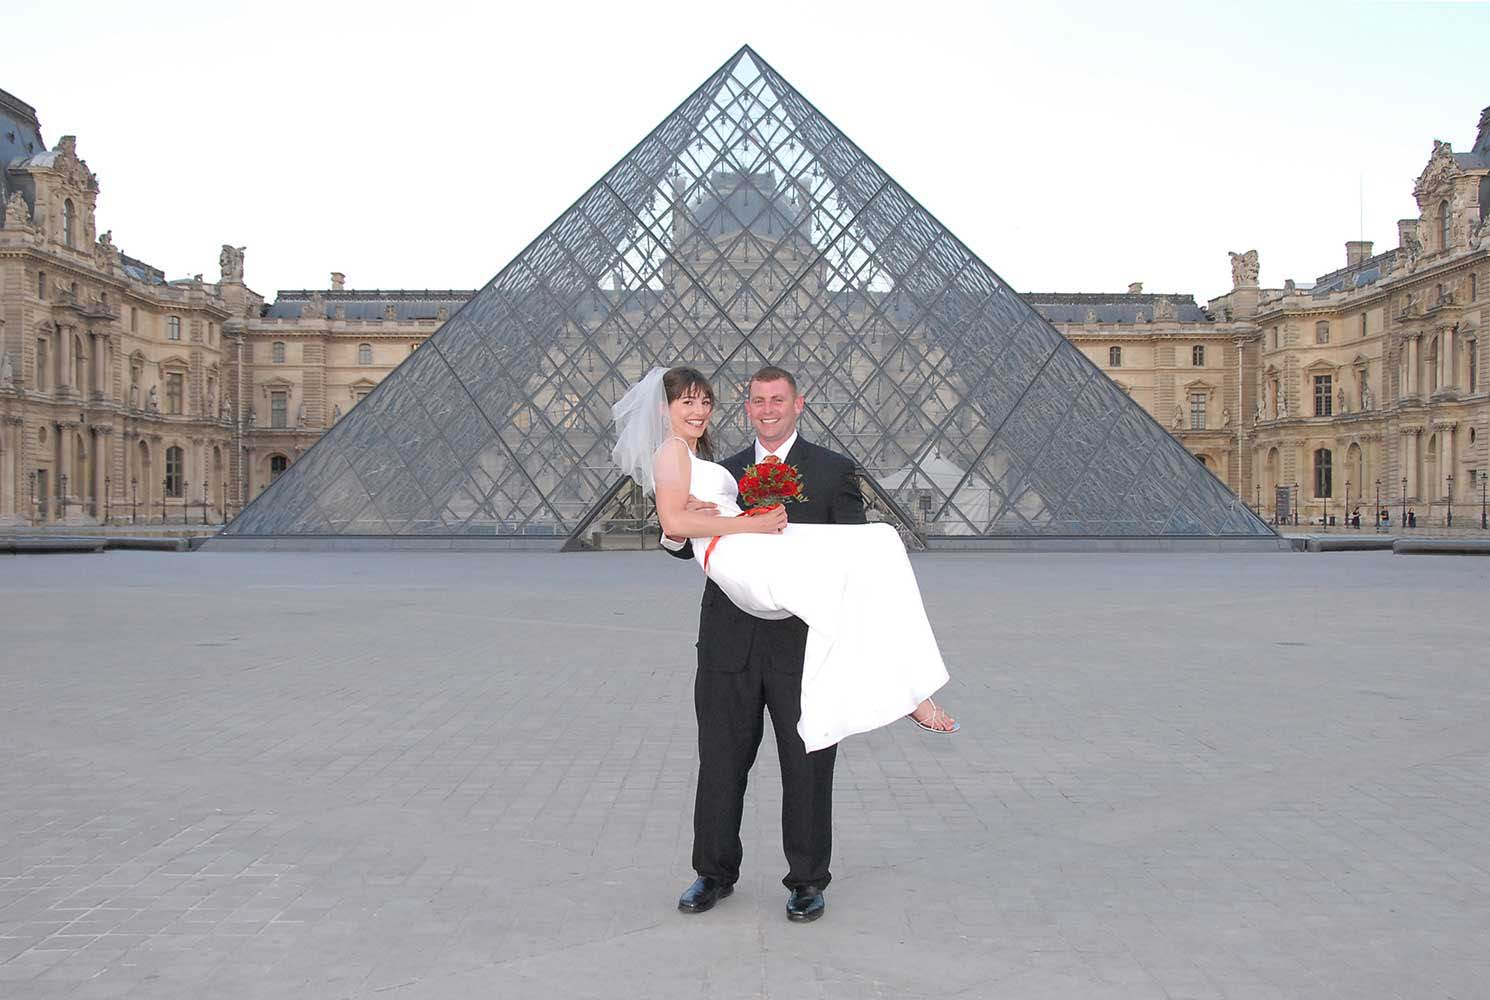 Married couple in front of the Louvre pyramid, Paris, France